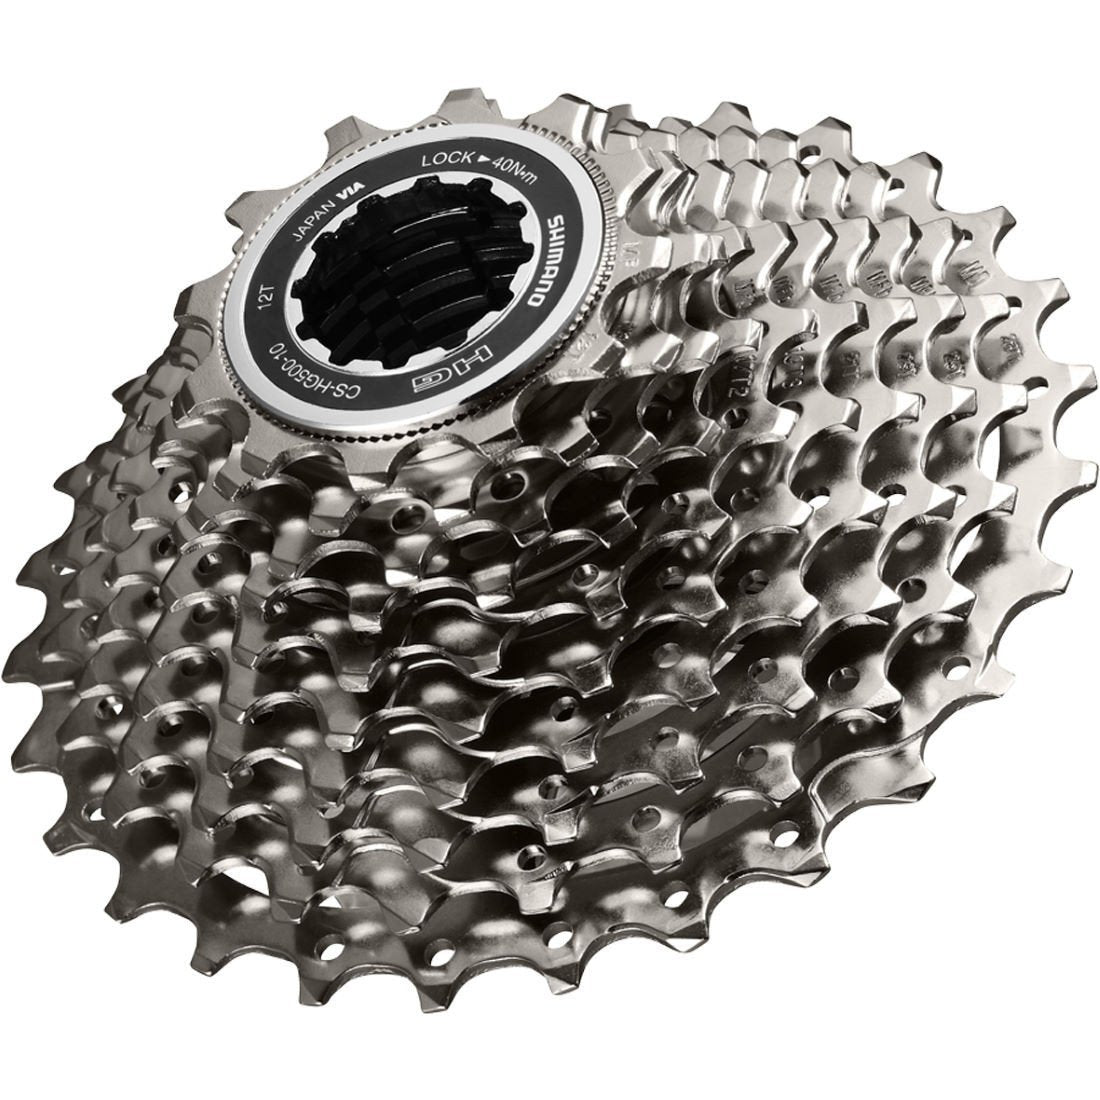 Shimano Components > Cassettes & Cables Shimano Tiagra 4700 10 Speed Cassette